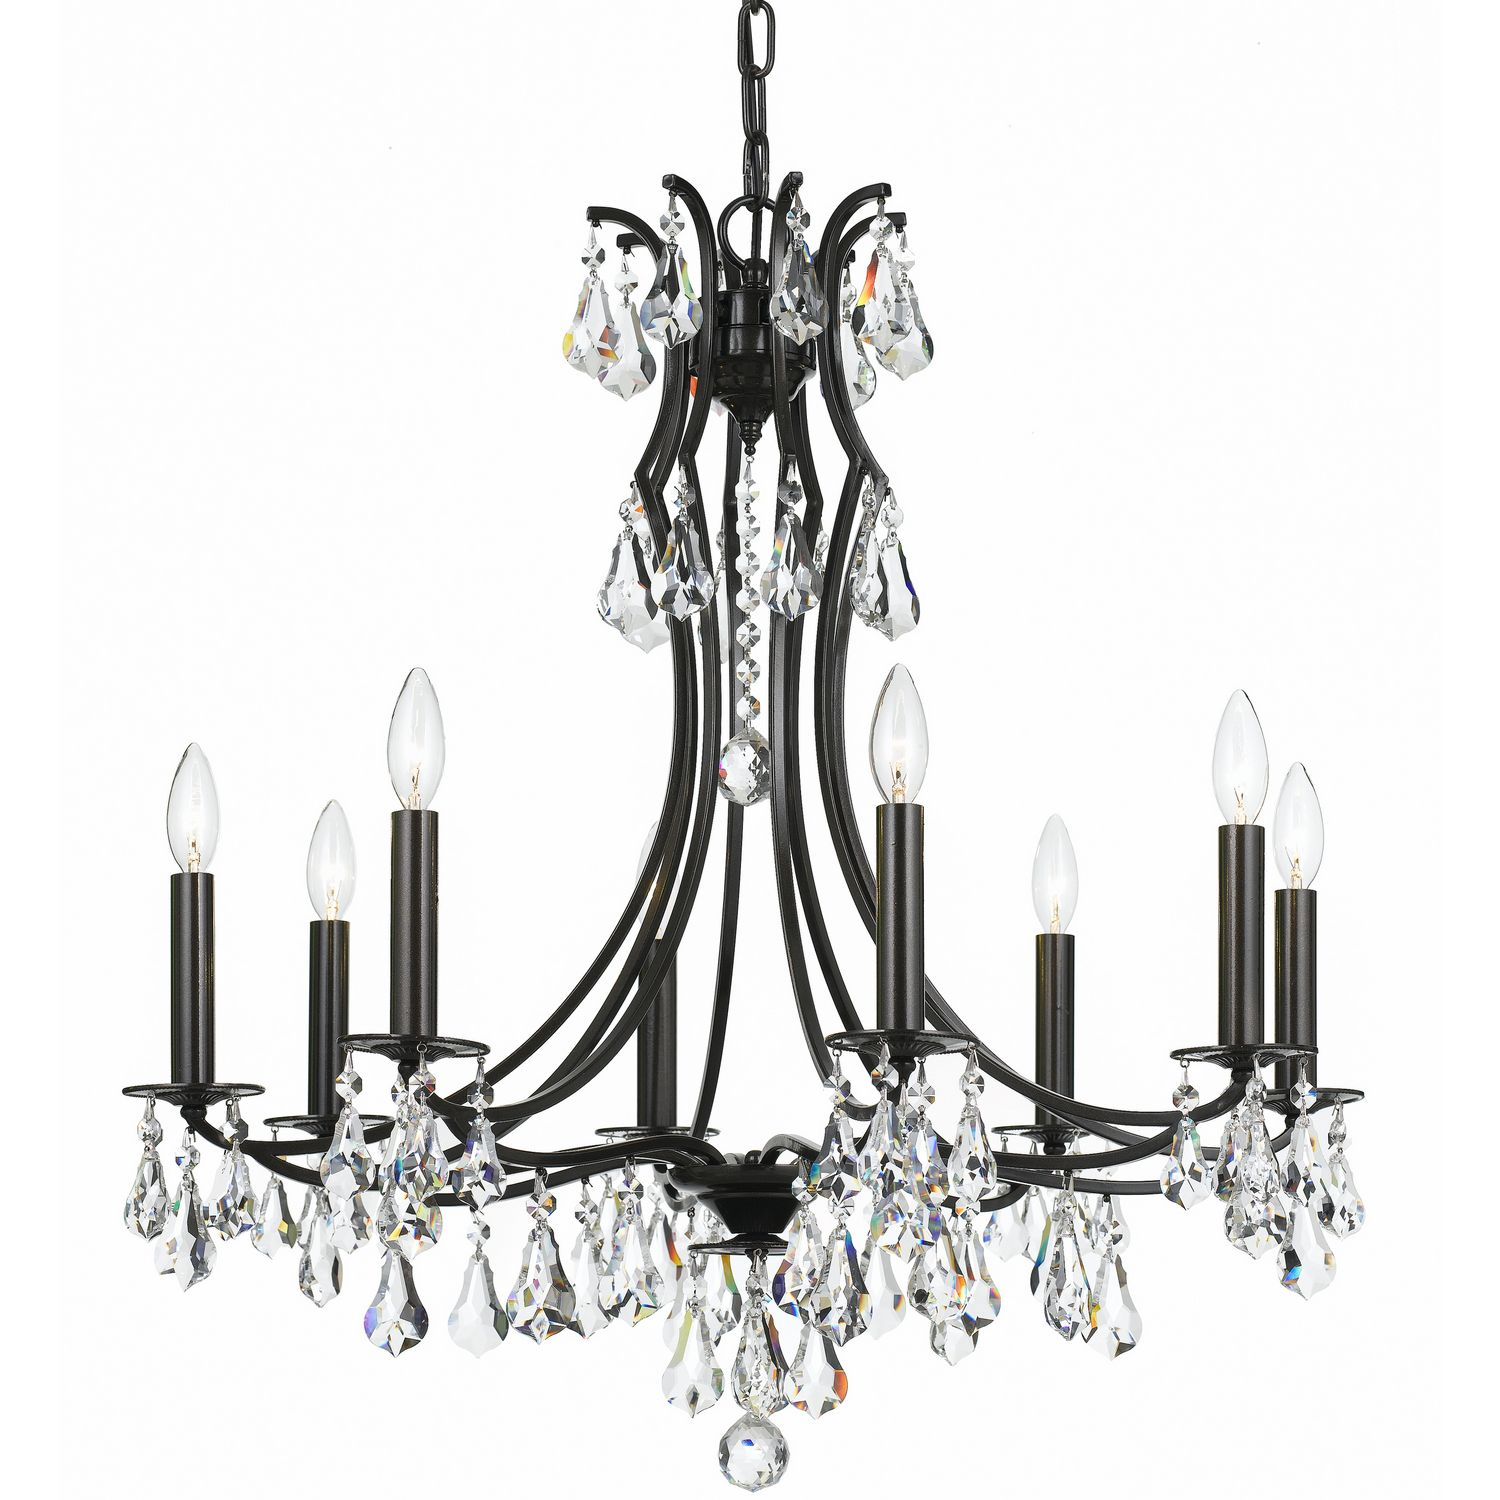 Eight Light Chandelier Inspired By Traditional Crystal